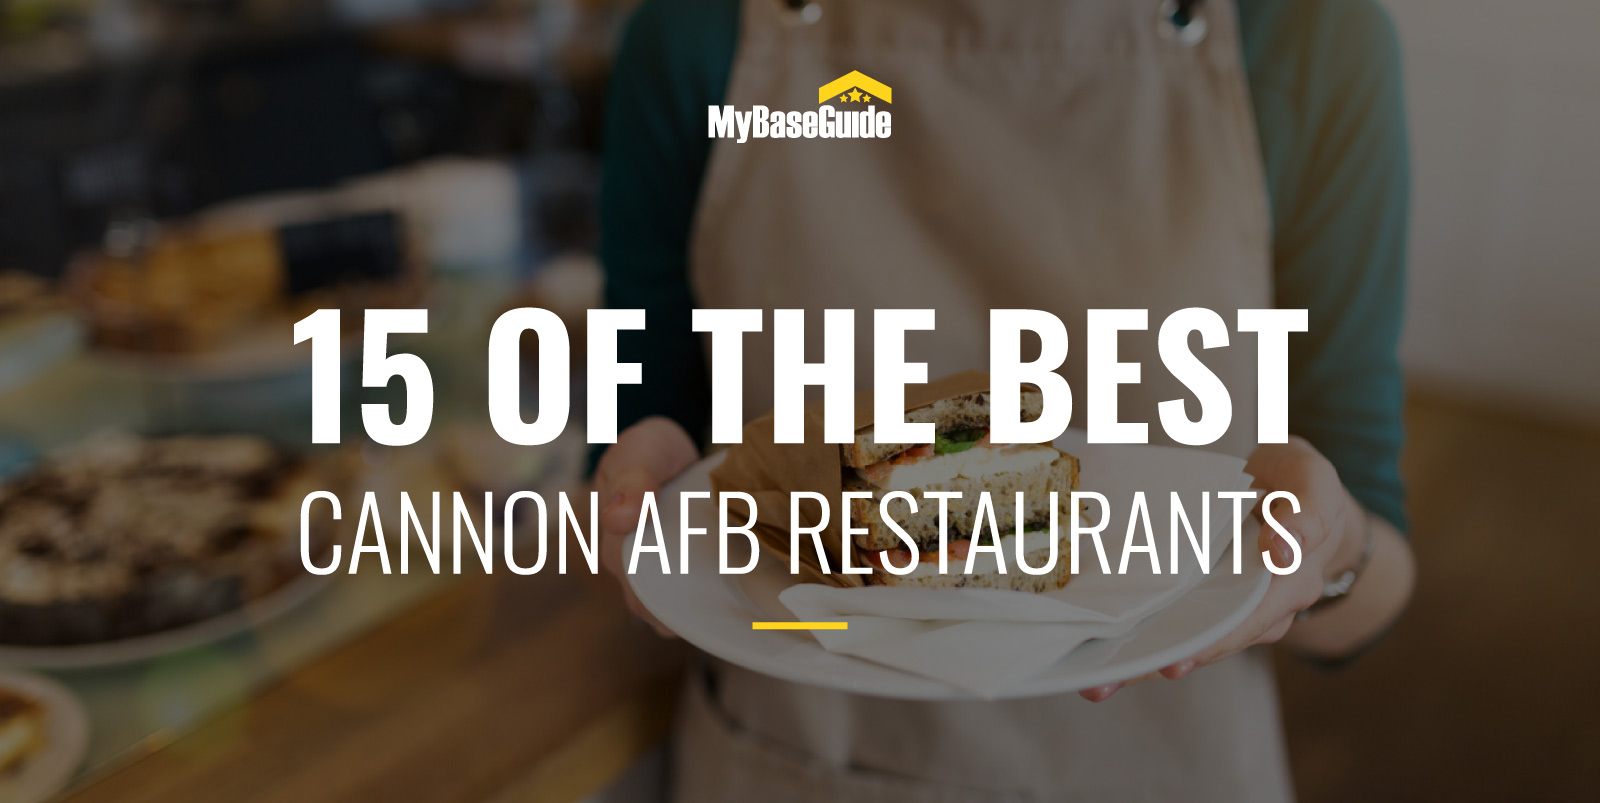 15 of the Best Cannon AFB Restaurants